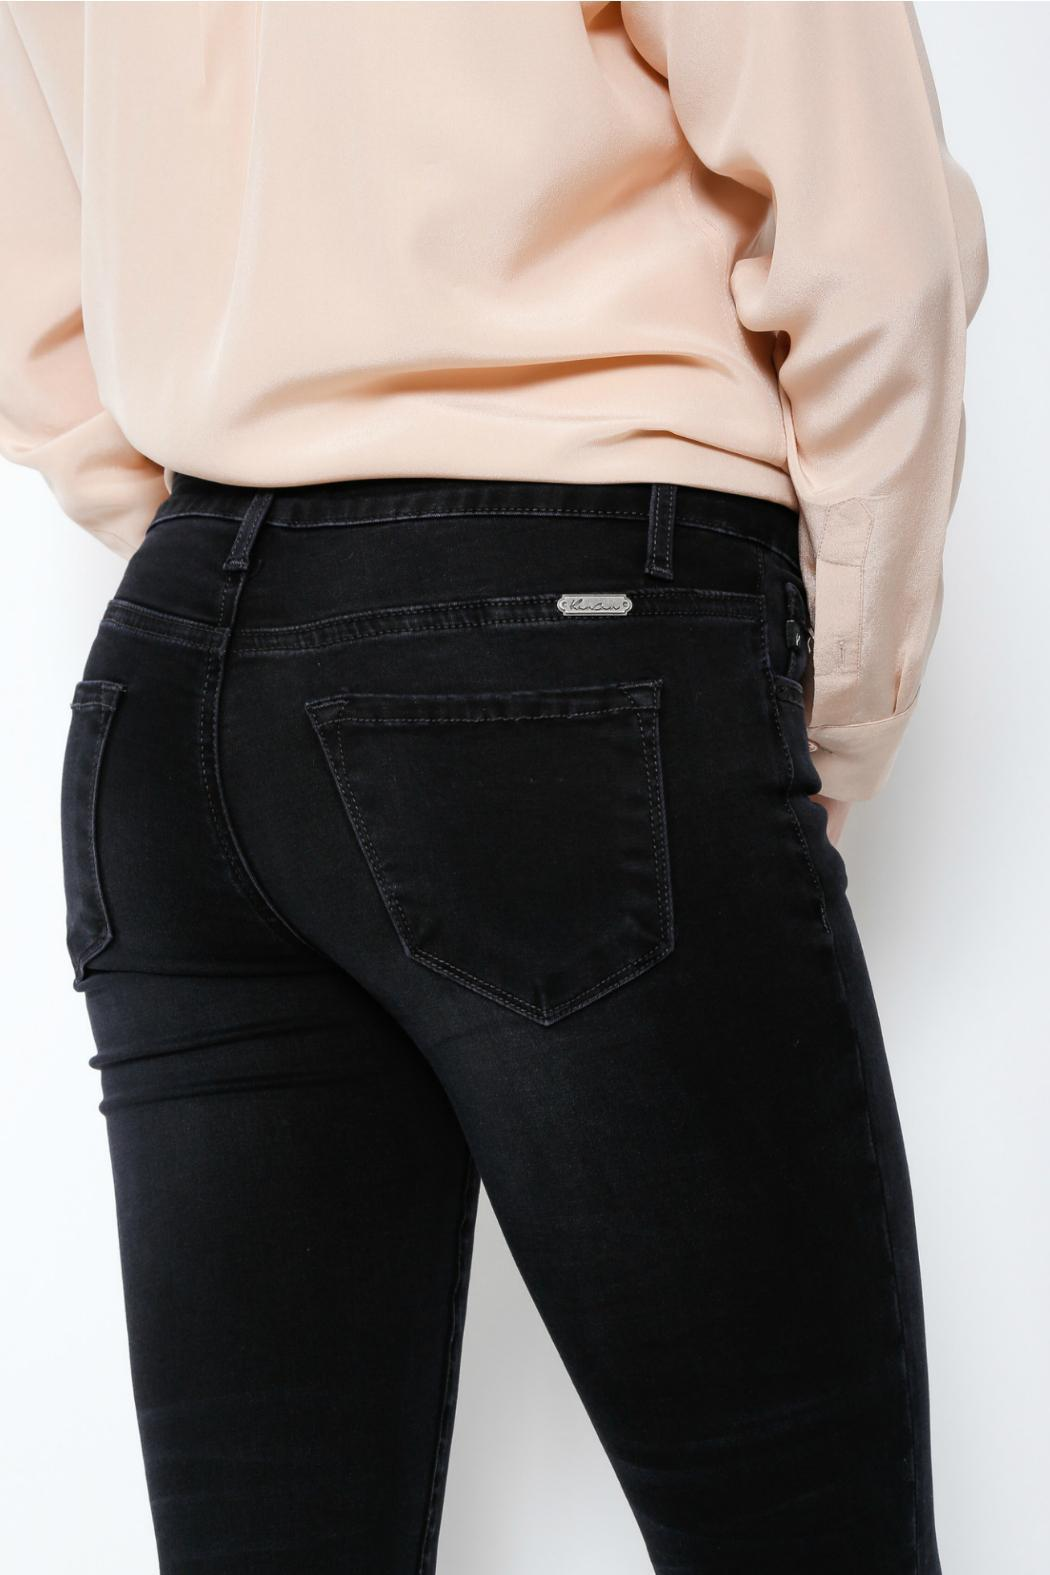 KanCan Black Wash Jeans - Back Cropped Image